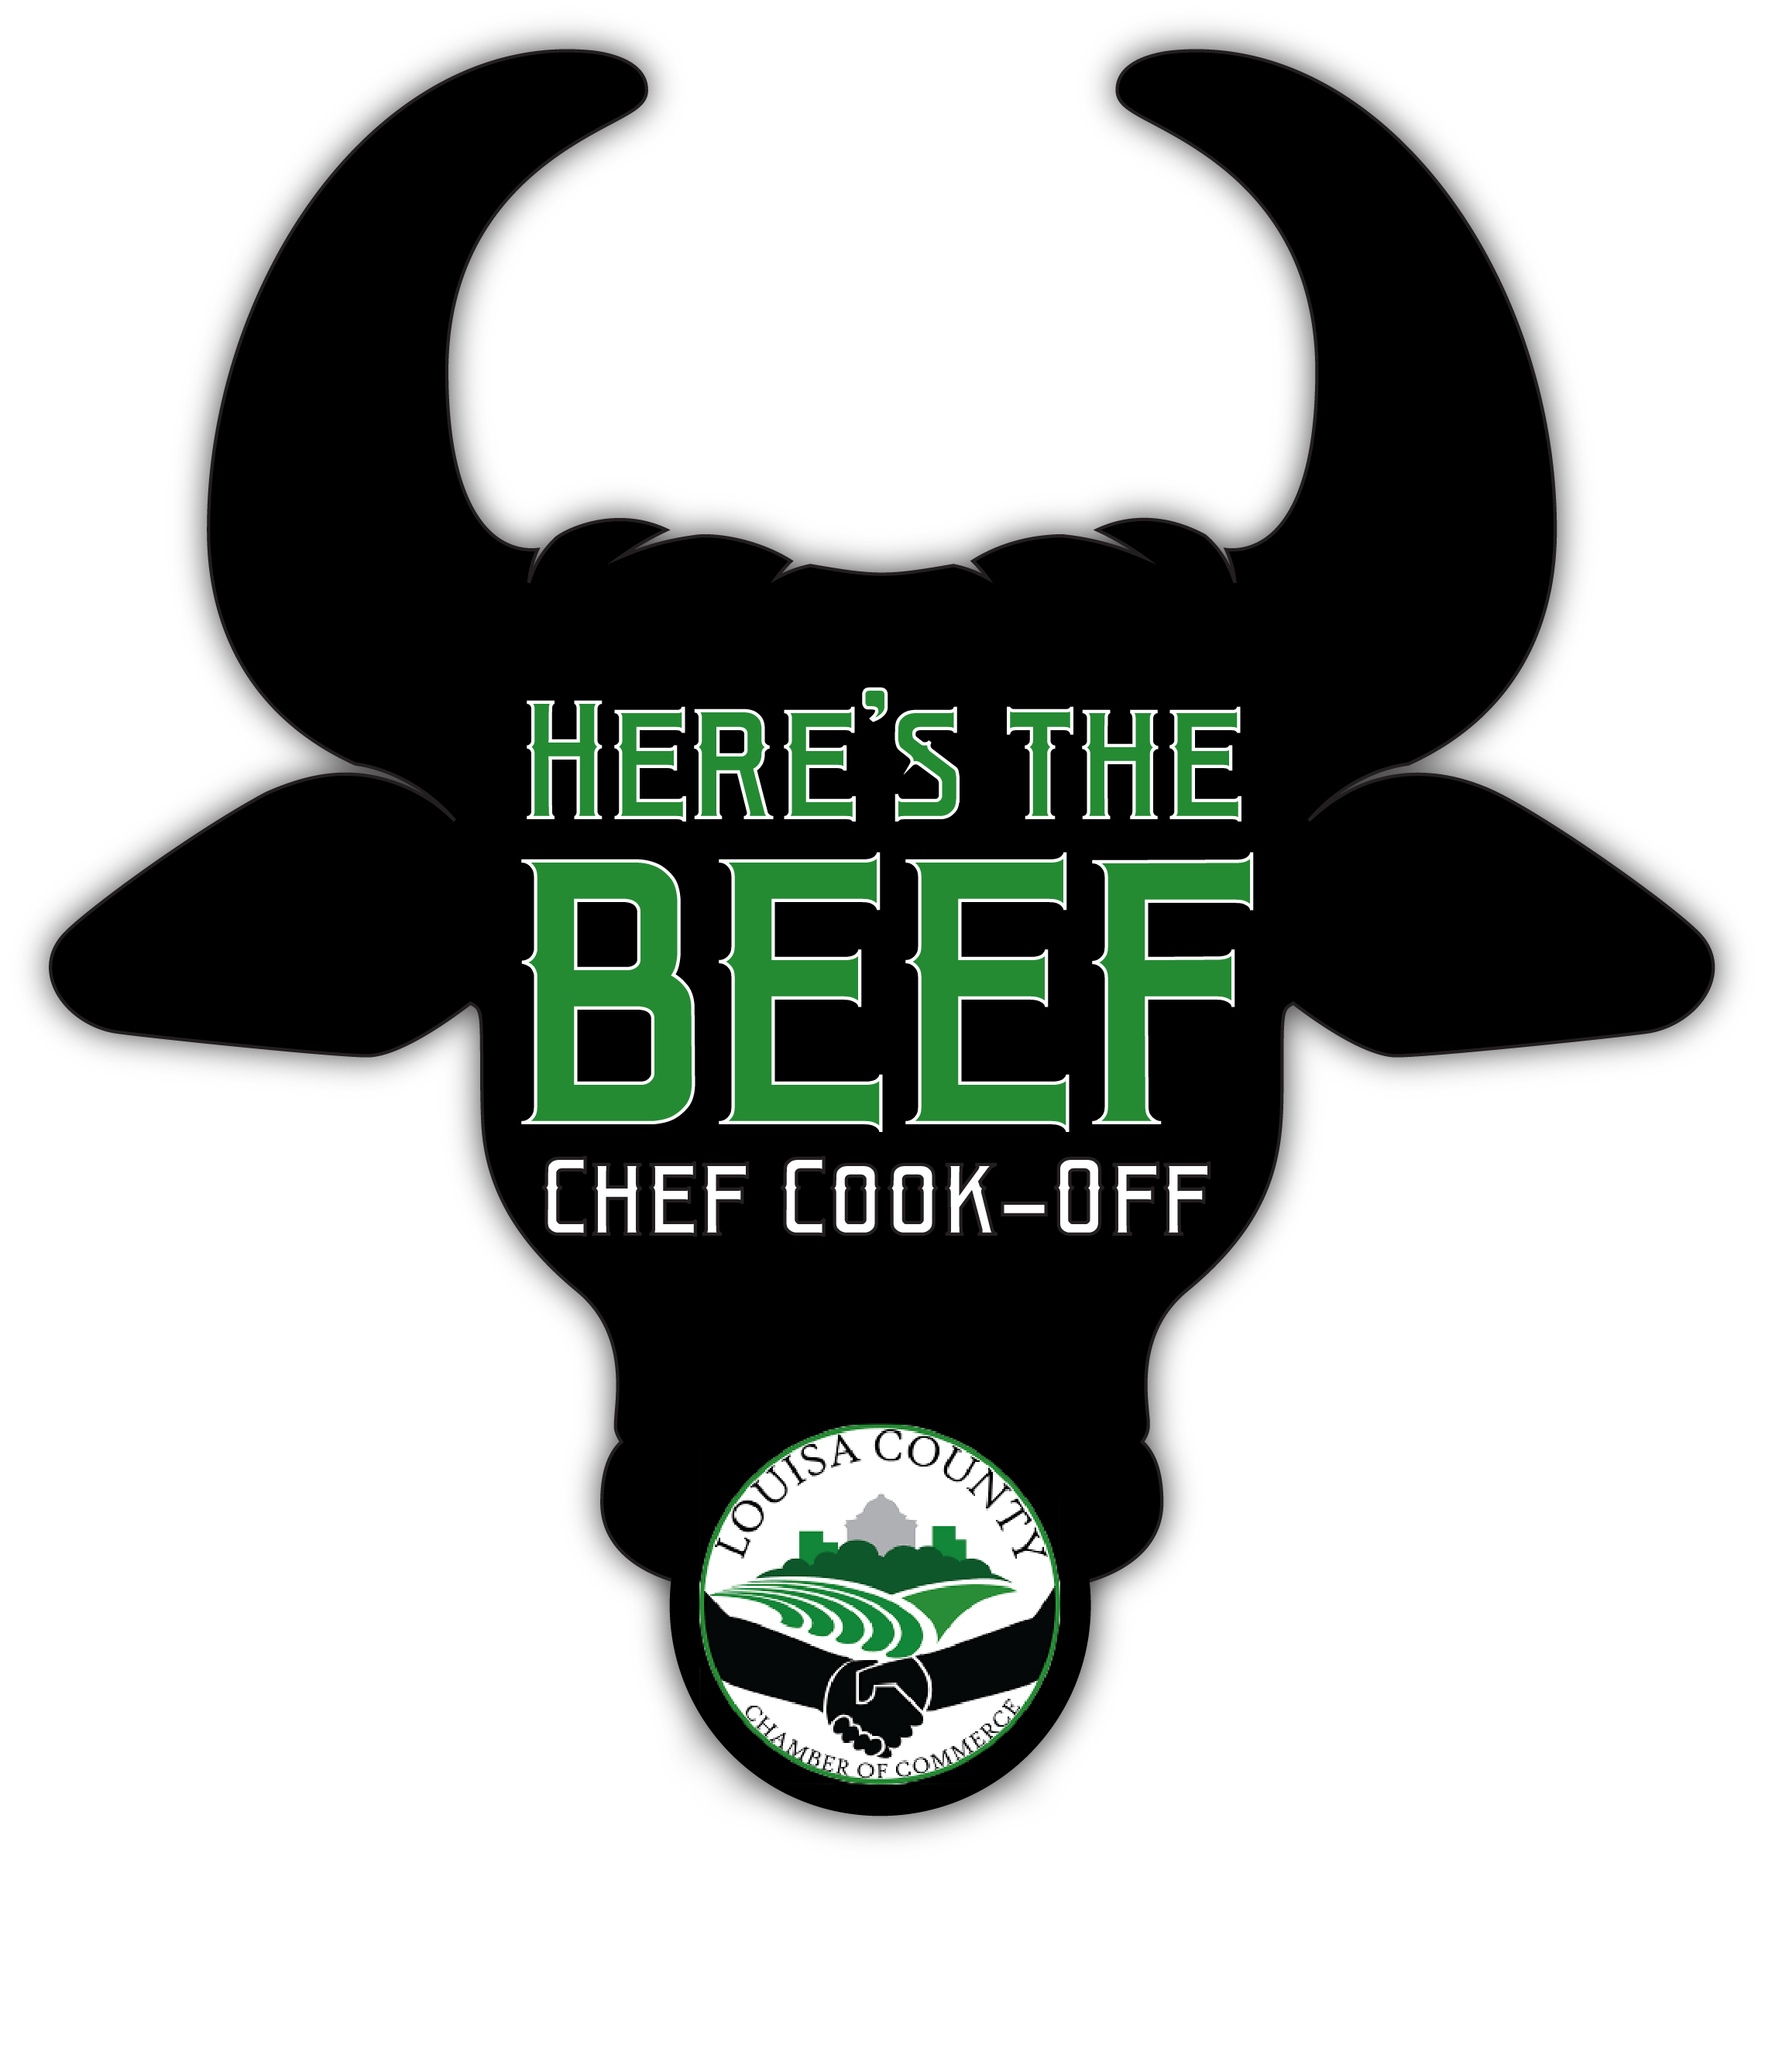 Here's the BEEF!